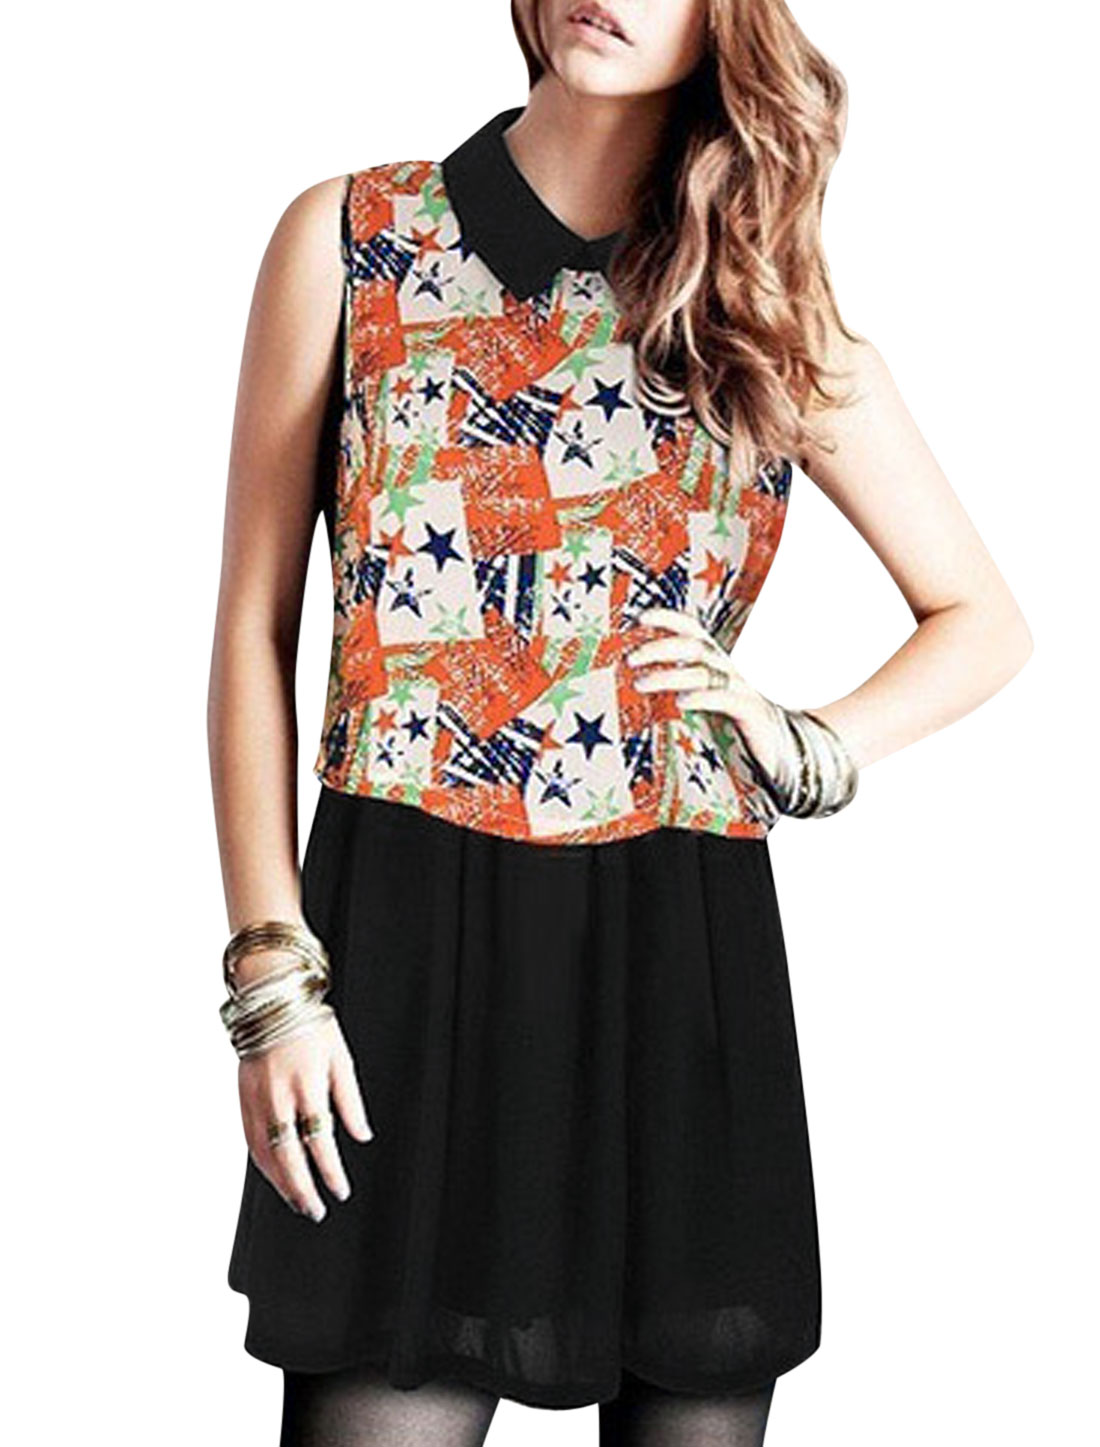 Lady Turndown Collar Sleeveless Star Prints Layered Design Dress Muticolor M